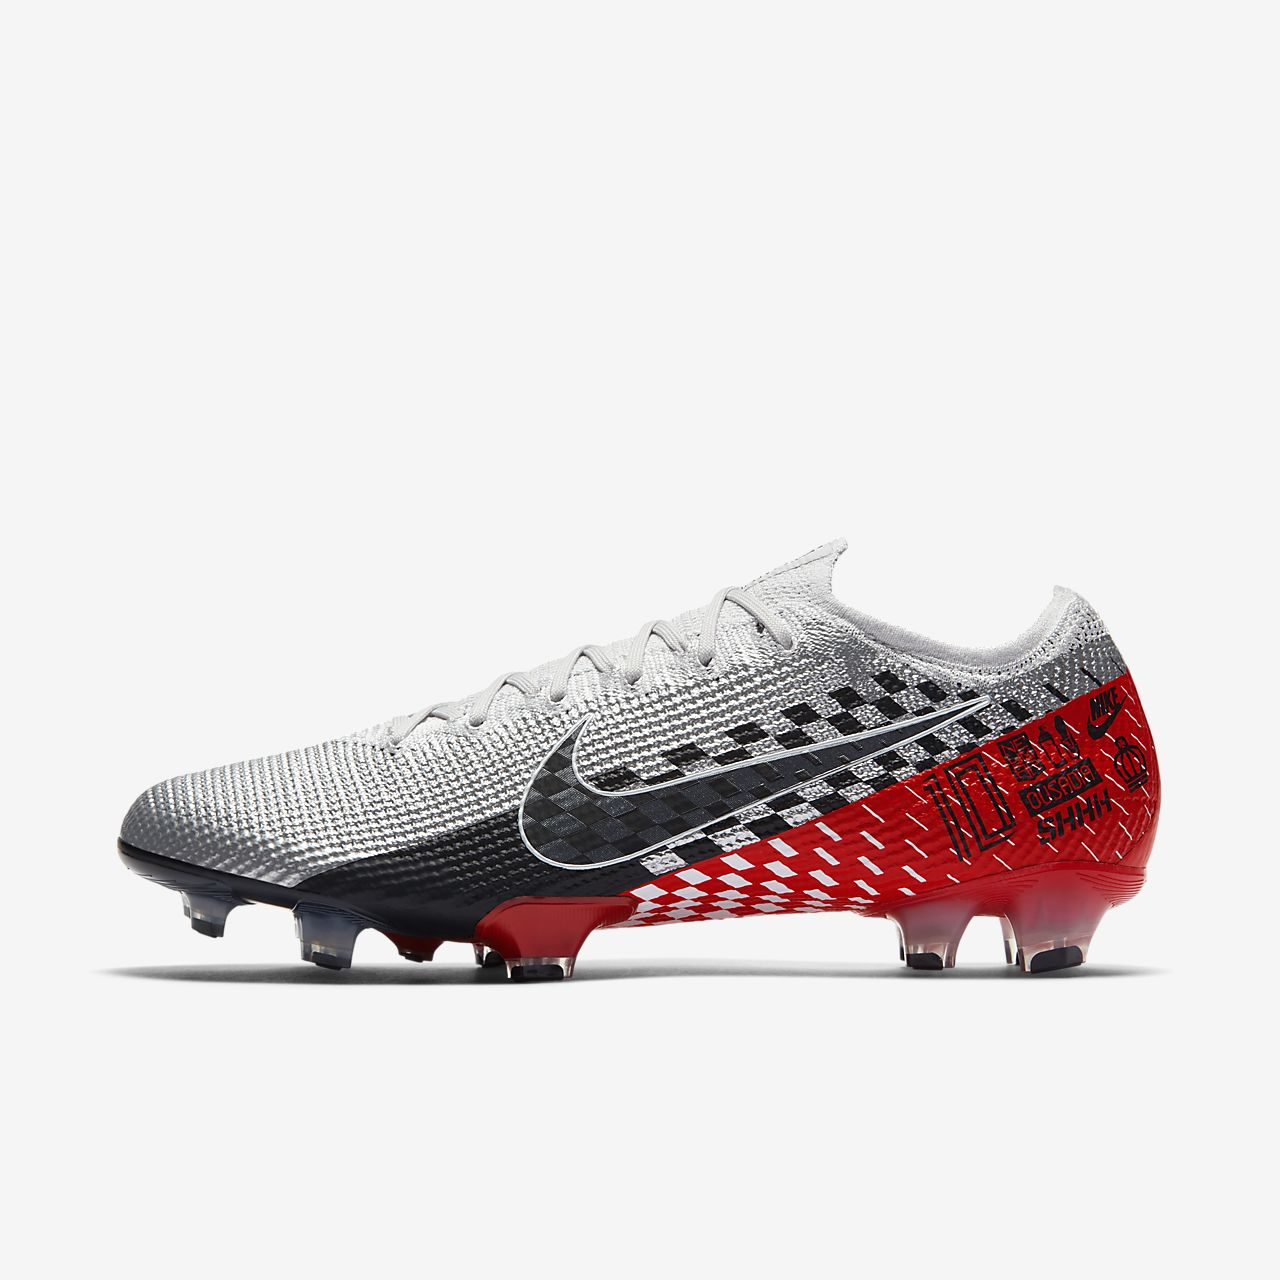 utterly stylish best website for discount nouvelle nike mercurial vetement et chaussure nike pas cher www ...